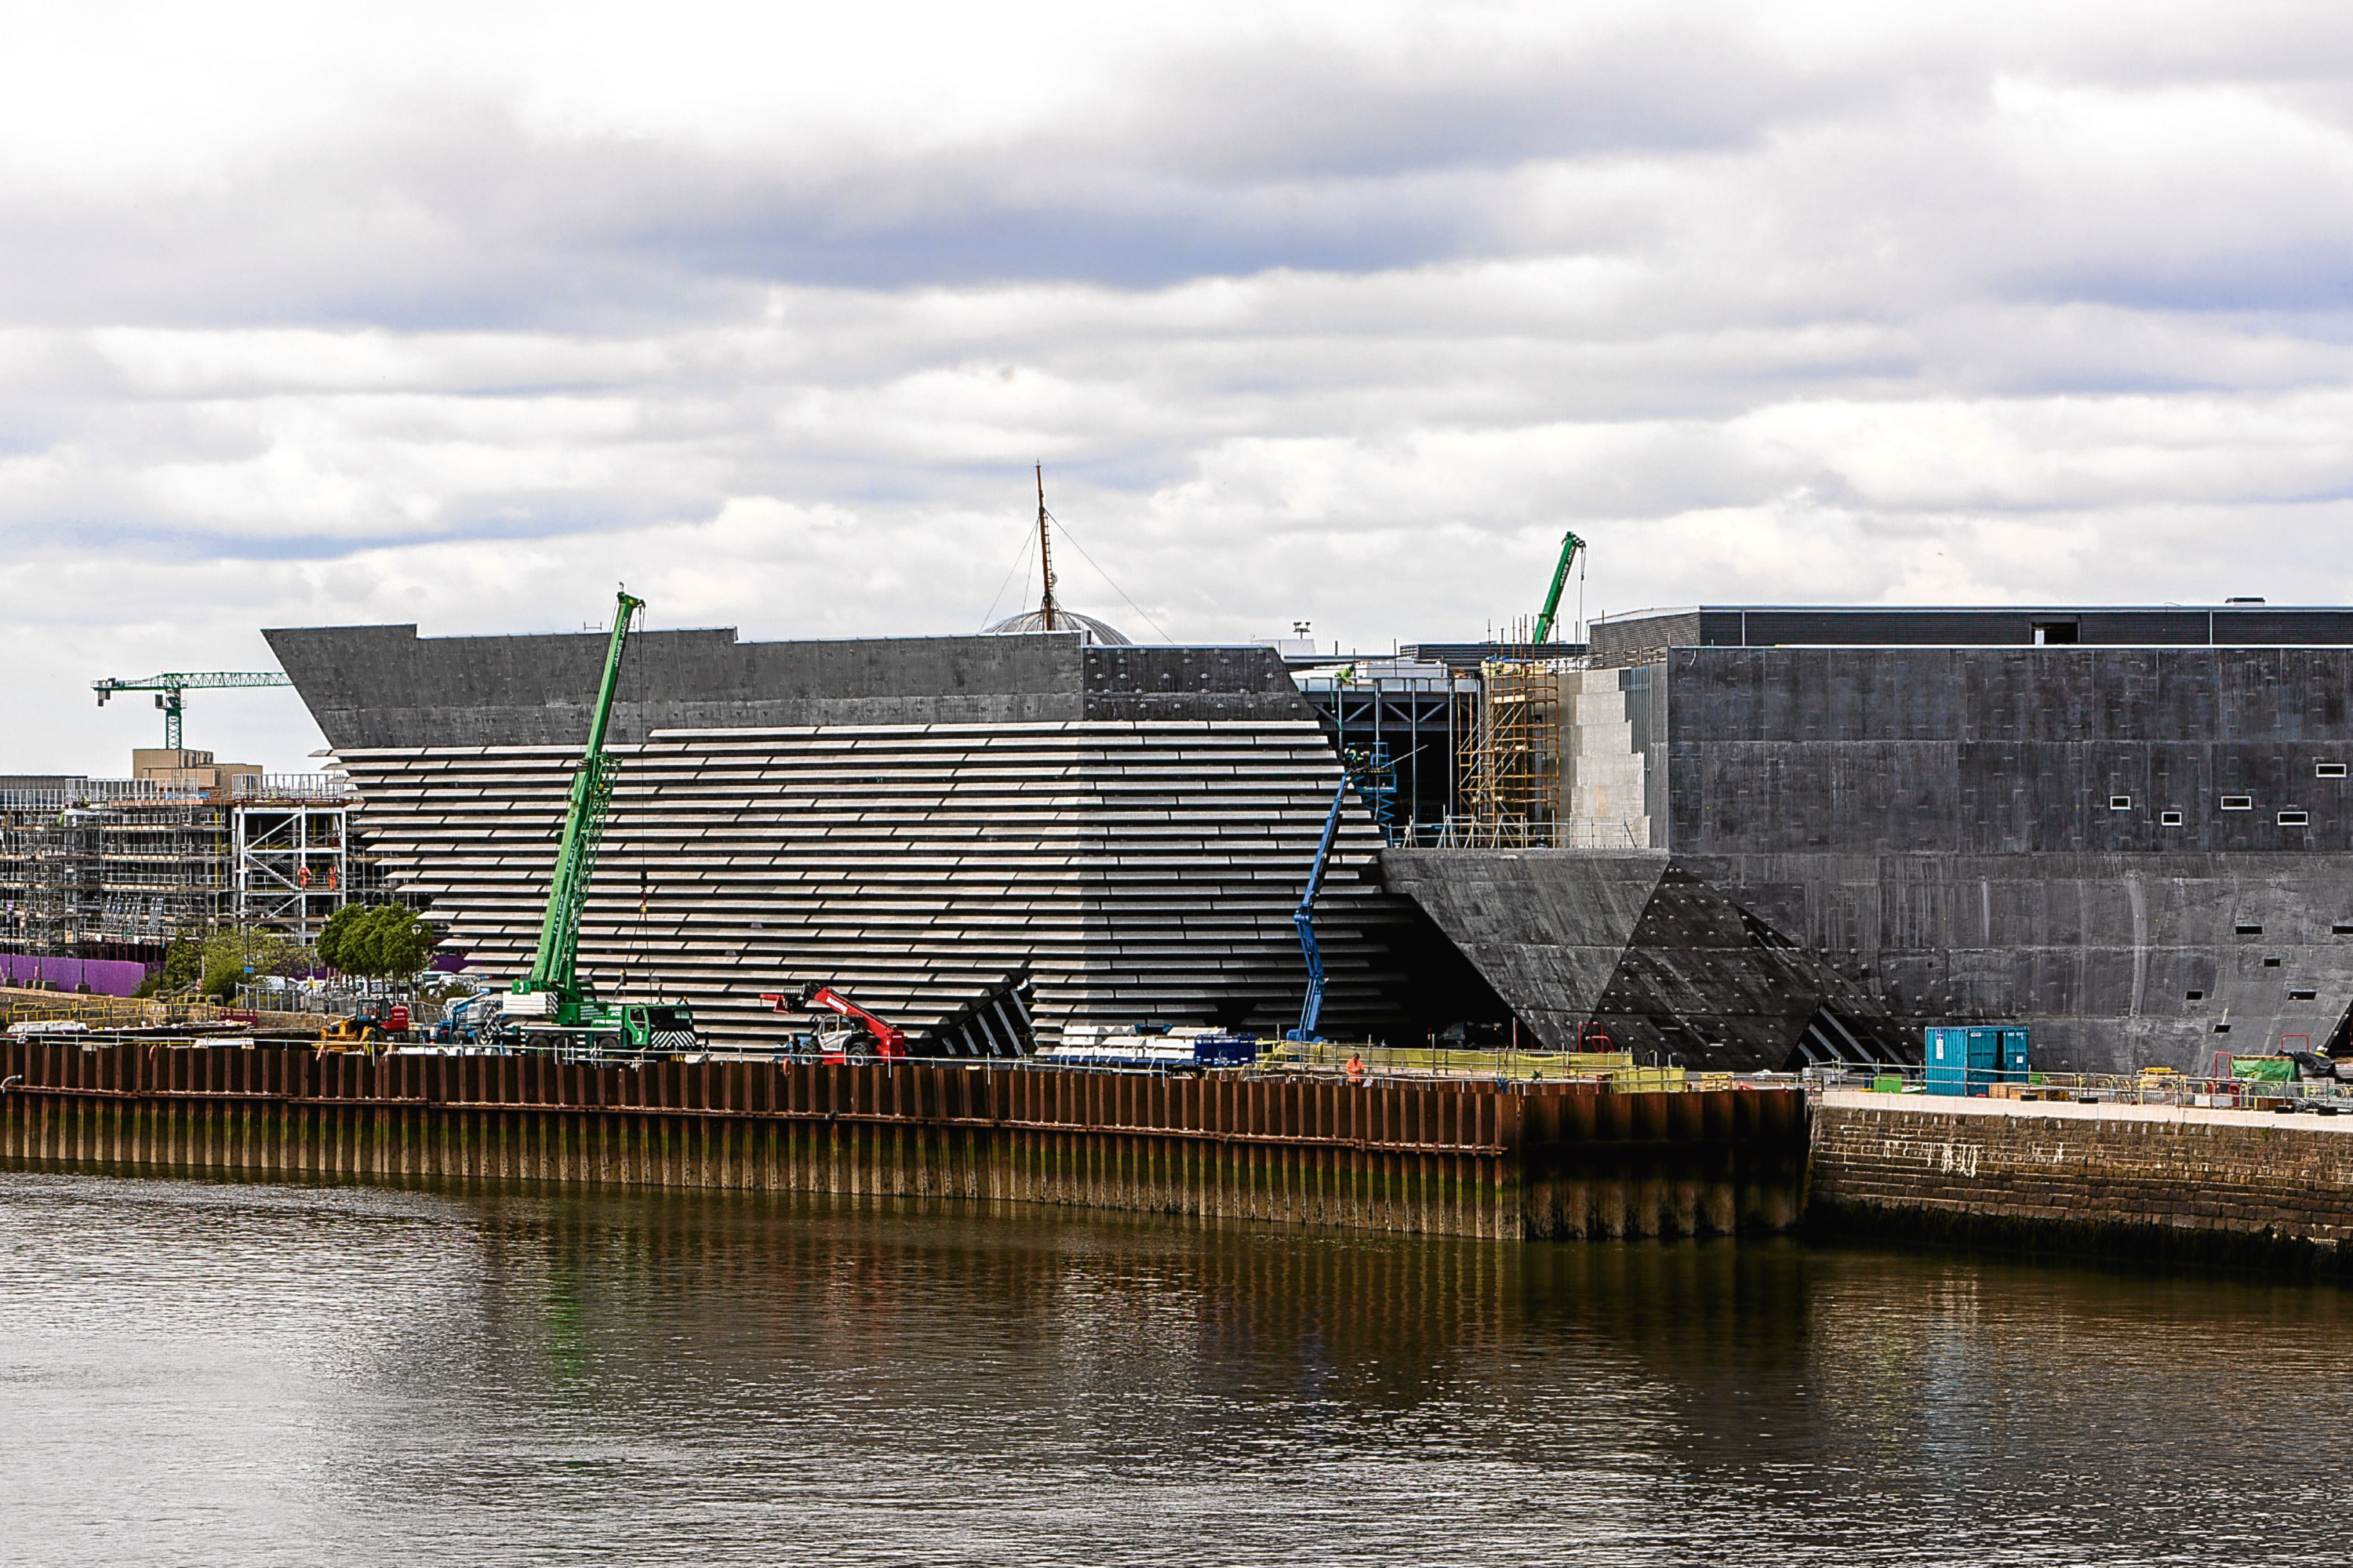 The city's high unemployment rate could be reversed by the redevelopment of the Waterfront, including the V&A Museum.